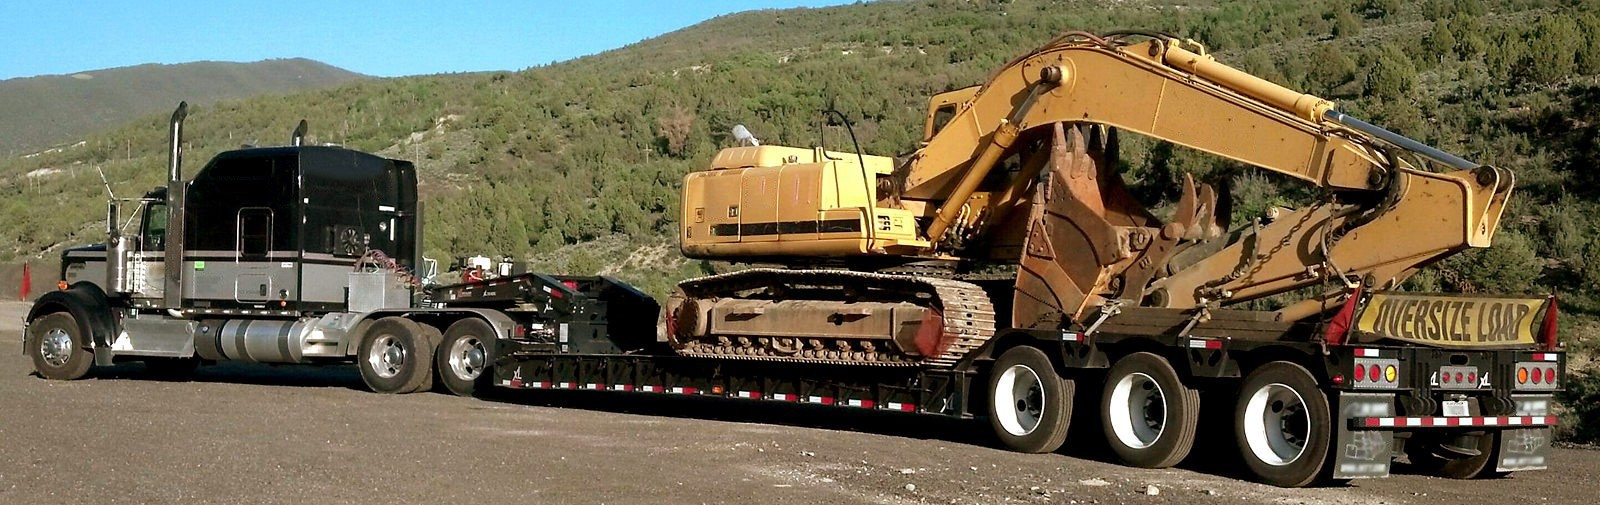 Semi hauling construction equipment